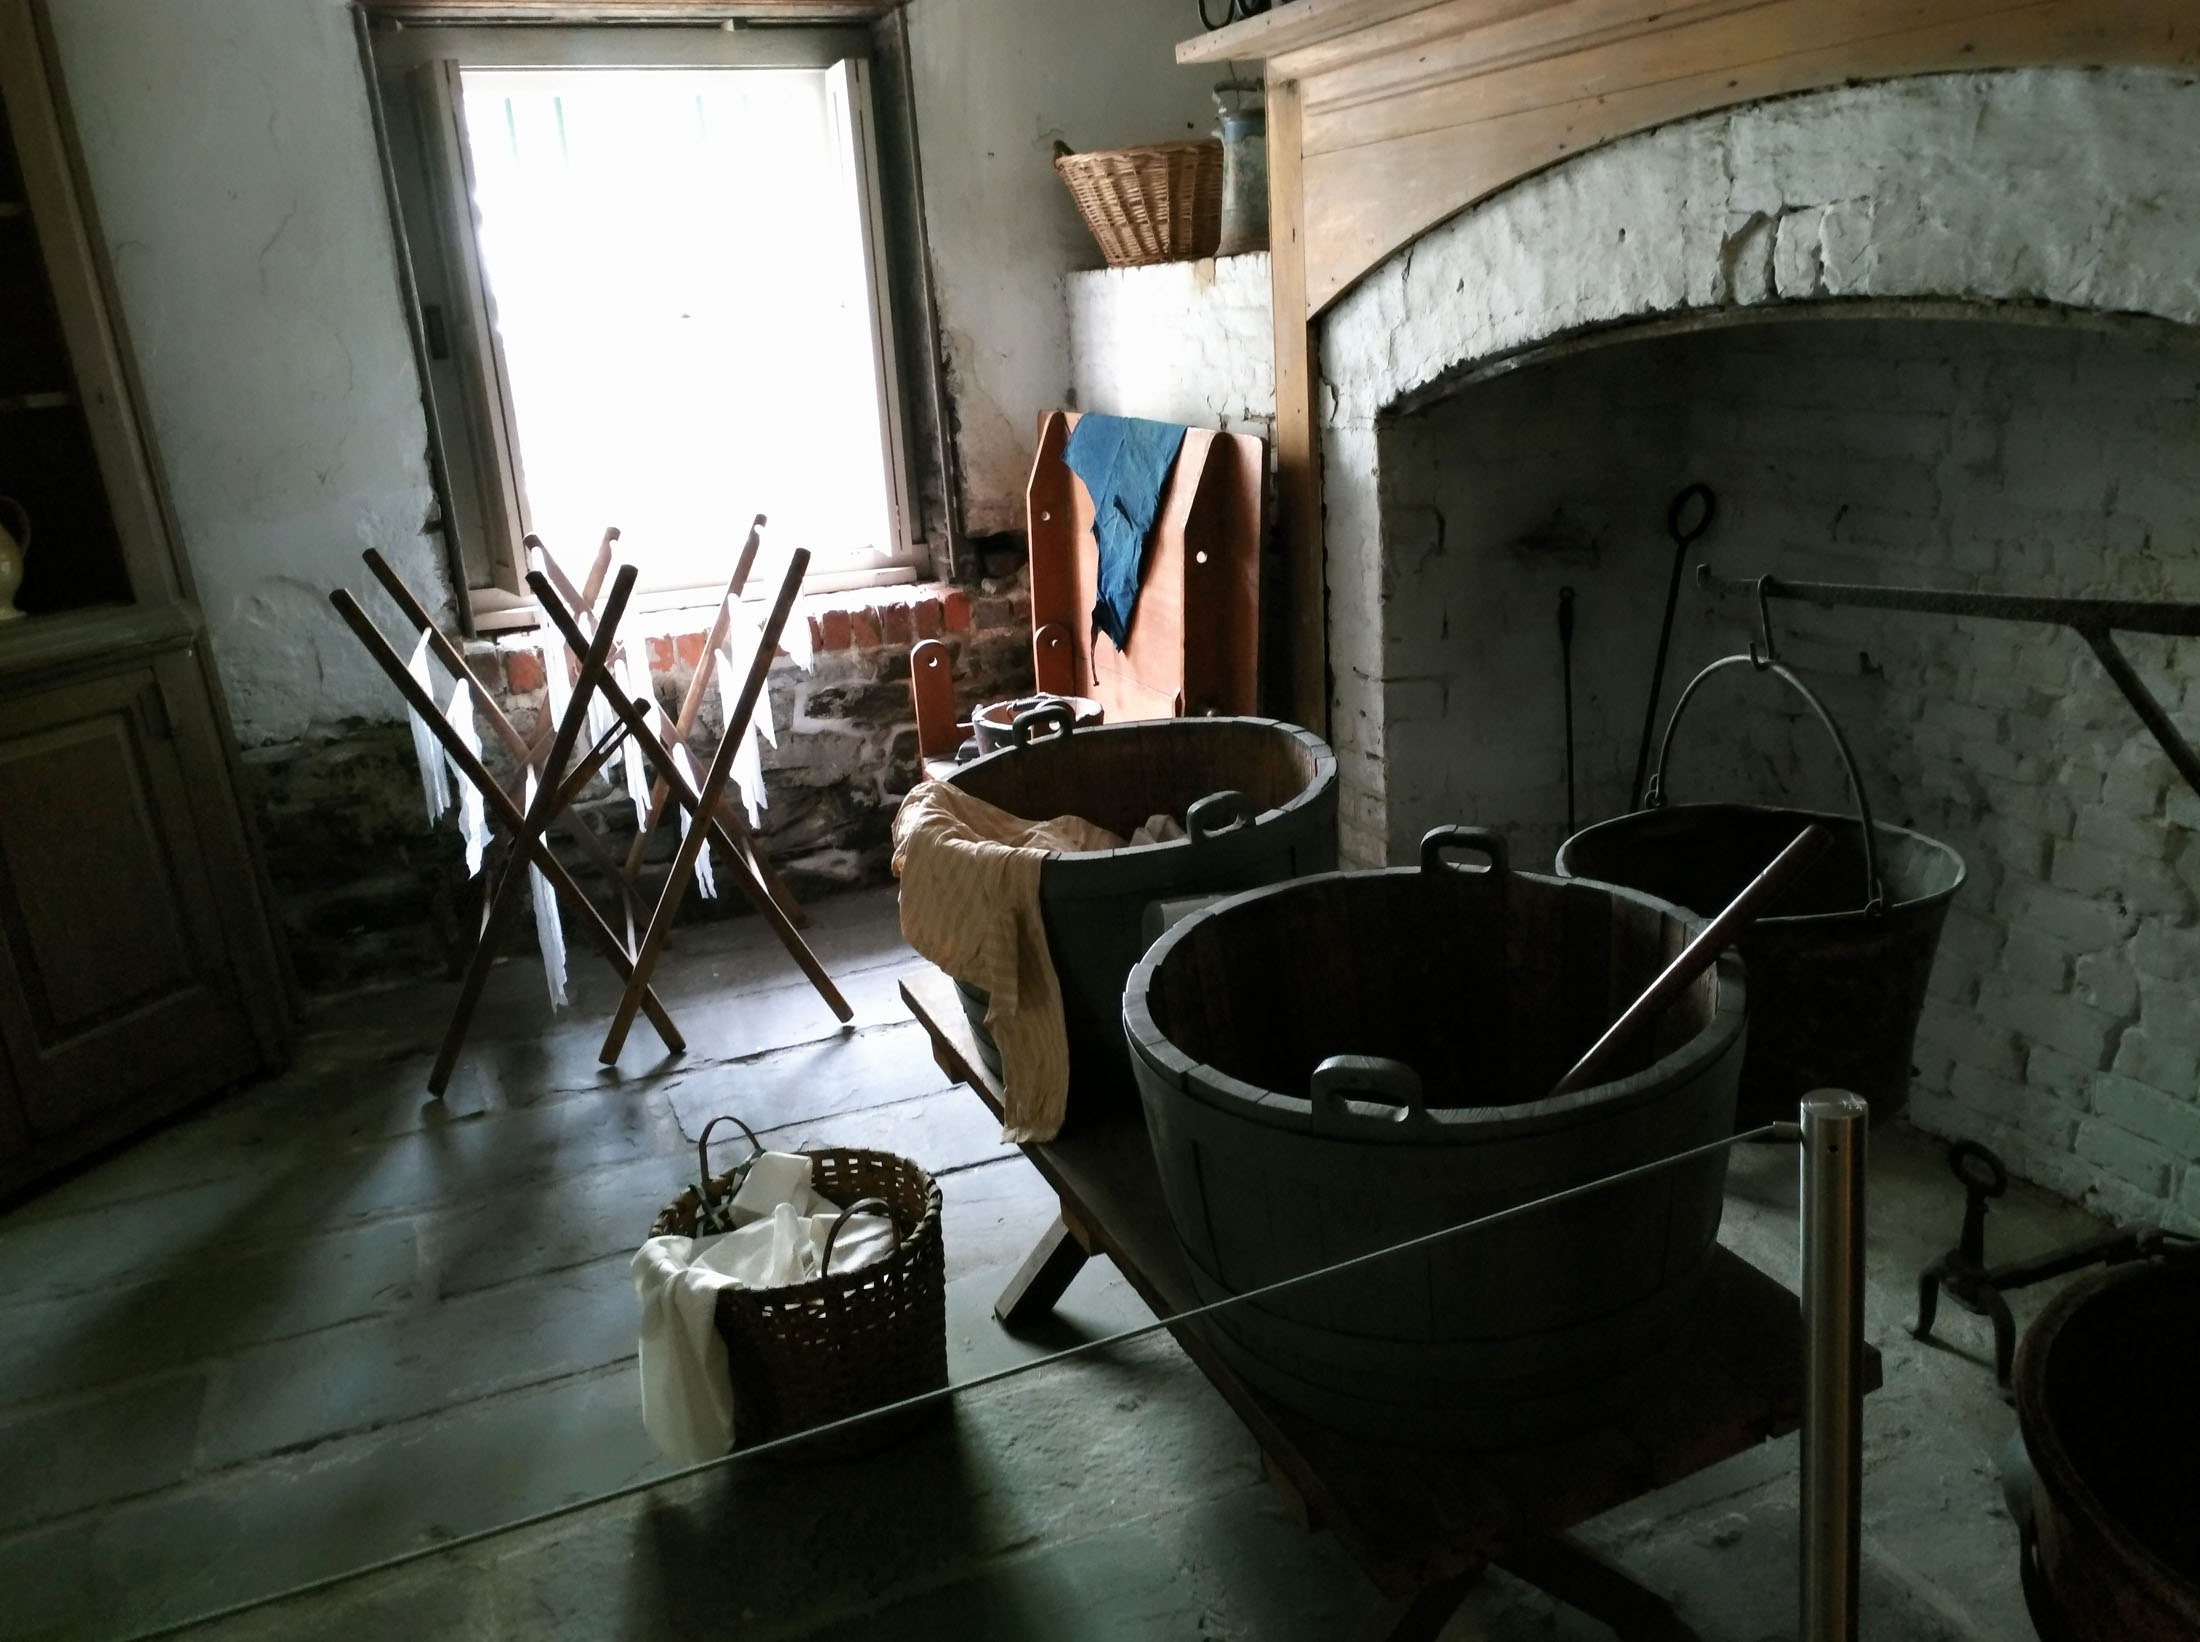 Enslaved people worked long hours in the heat in the cellar of the Owens-Thomas house. Only recently has that story been told on the historic tour. (Craig Davis/Craigslegztravels.com)